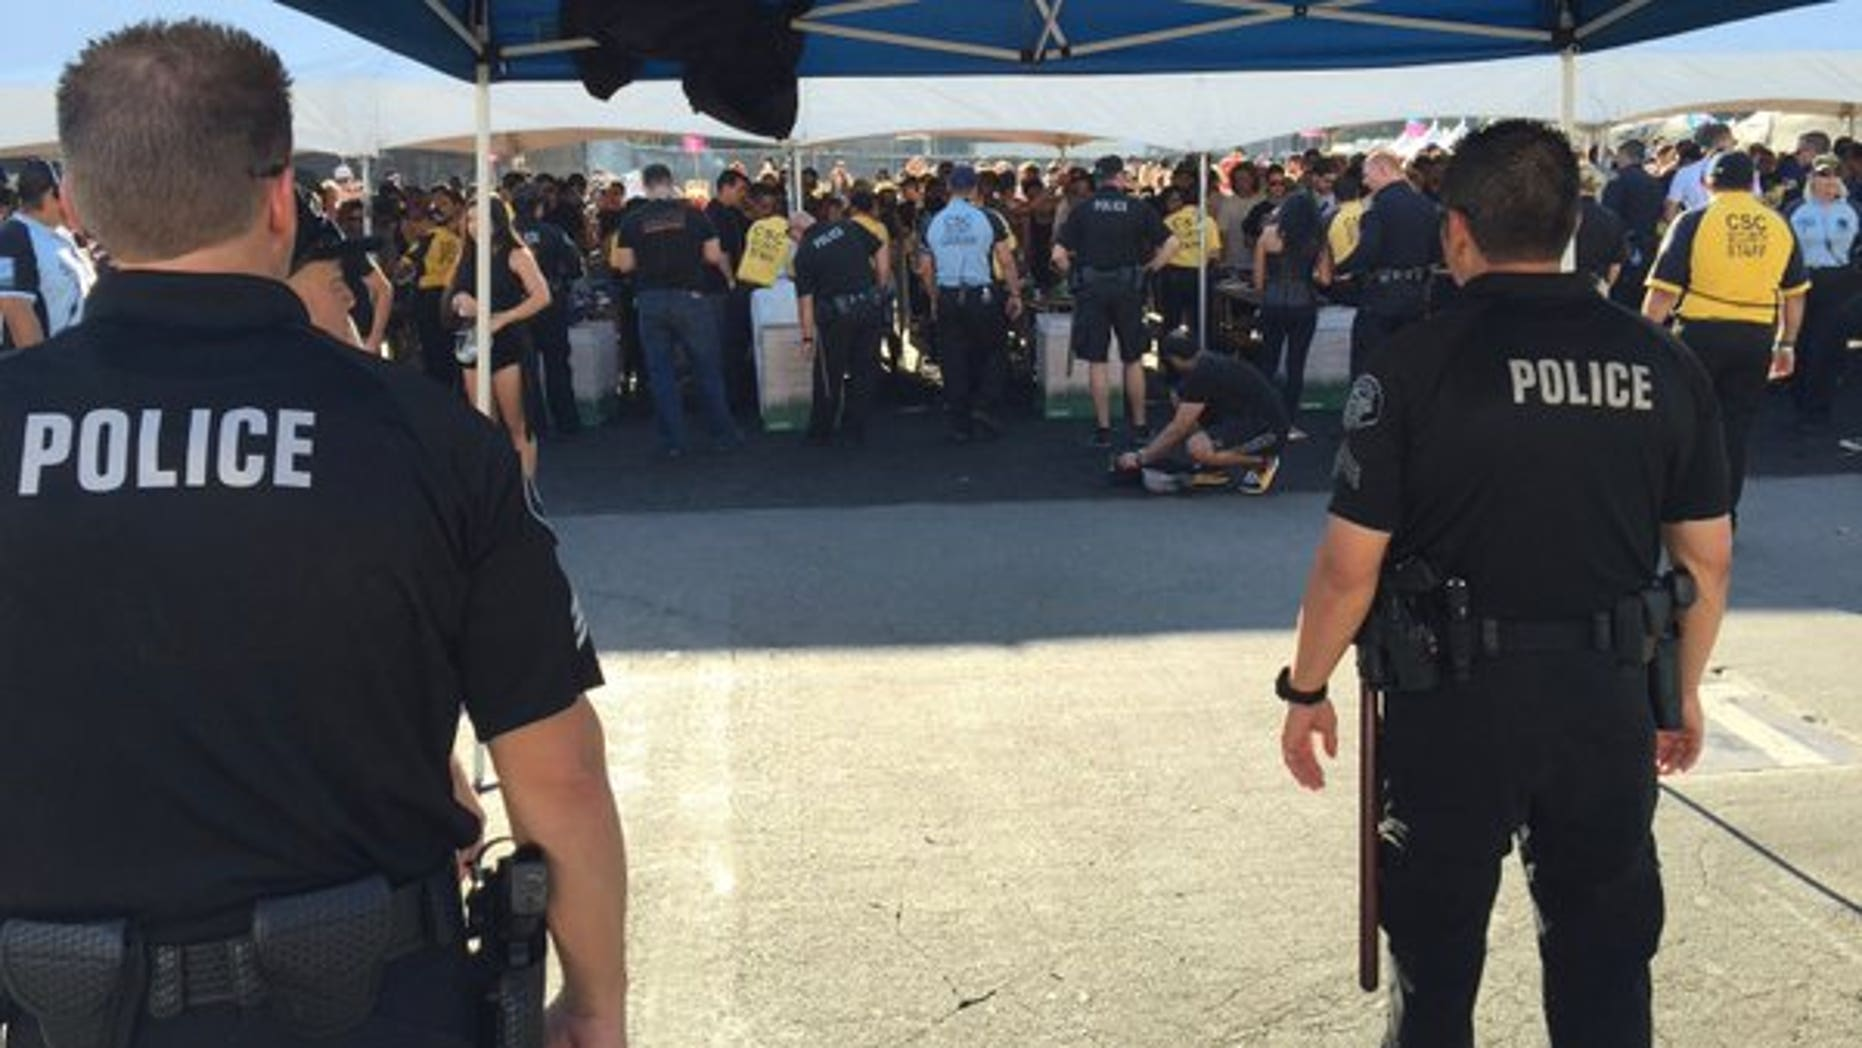 Police made hundreds of arrests at Southern California electronic music festivals over the weekend.